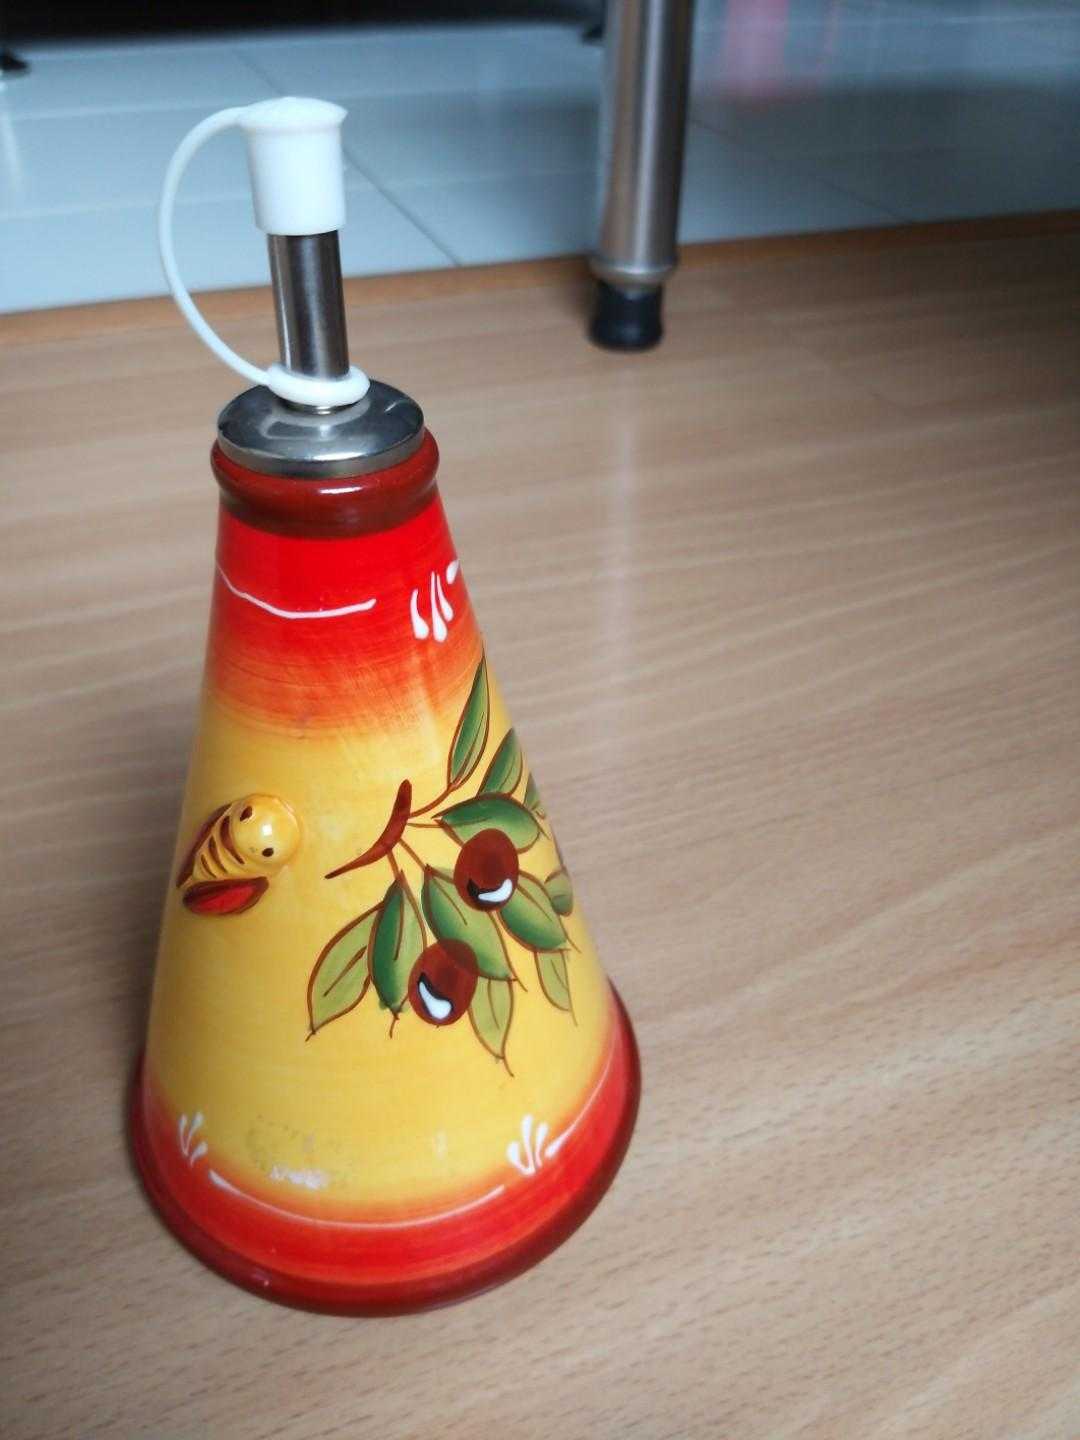 Oil pourer container